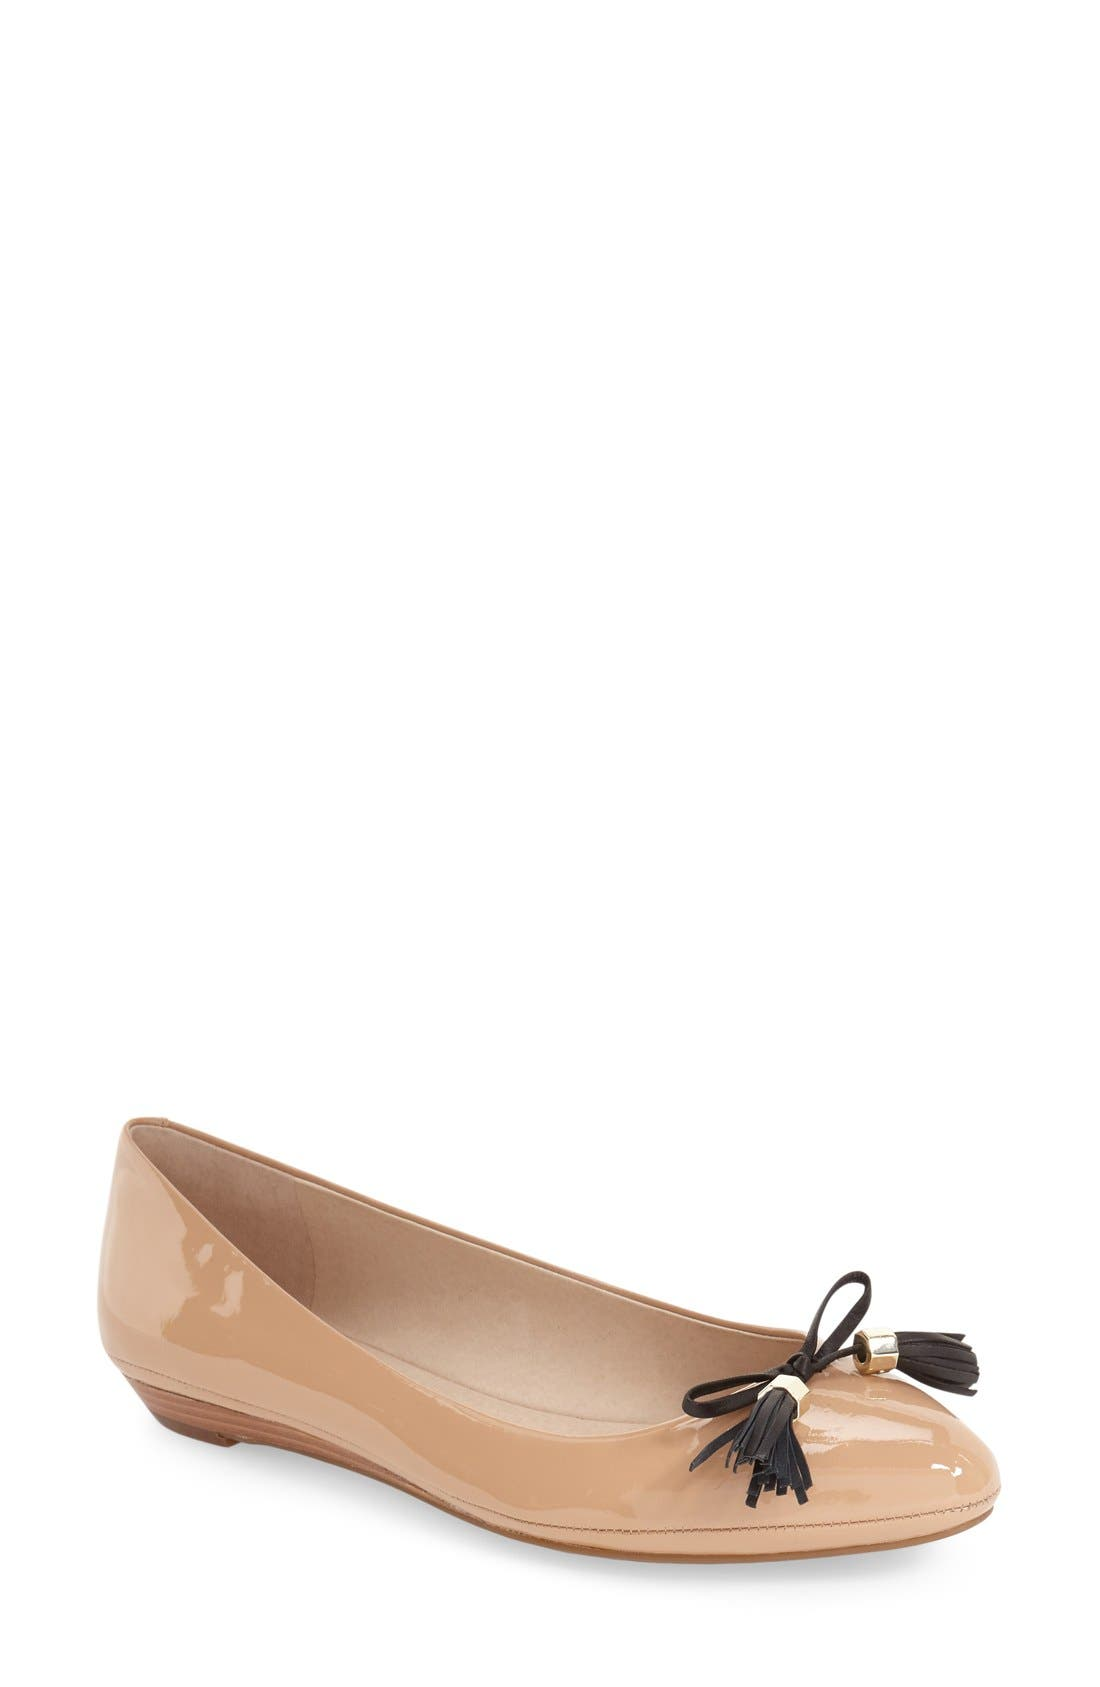 Alternate Image 1 Selected - Louise et Cie 'Aradella' Pointy Toe Flat (Women) (Nordstrom Exclusive)